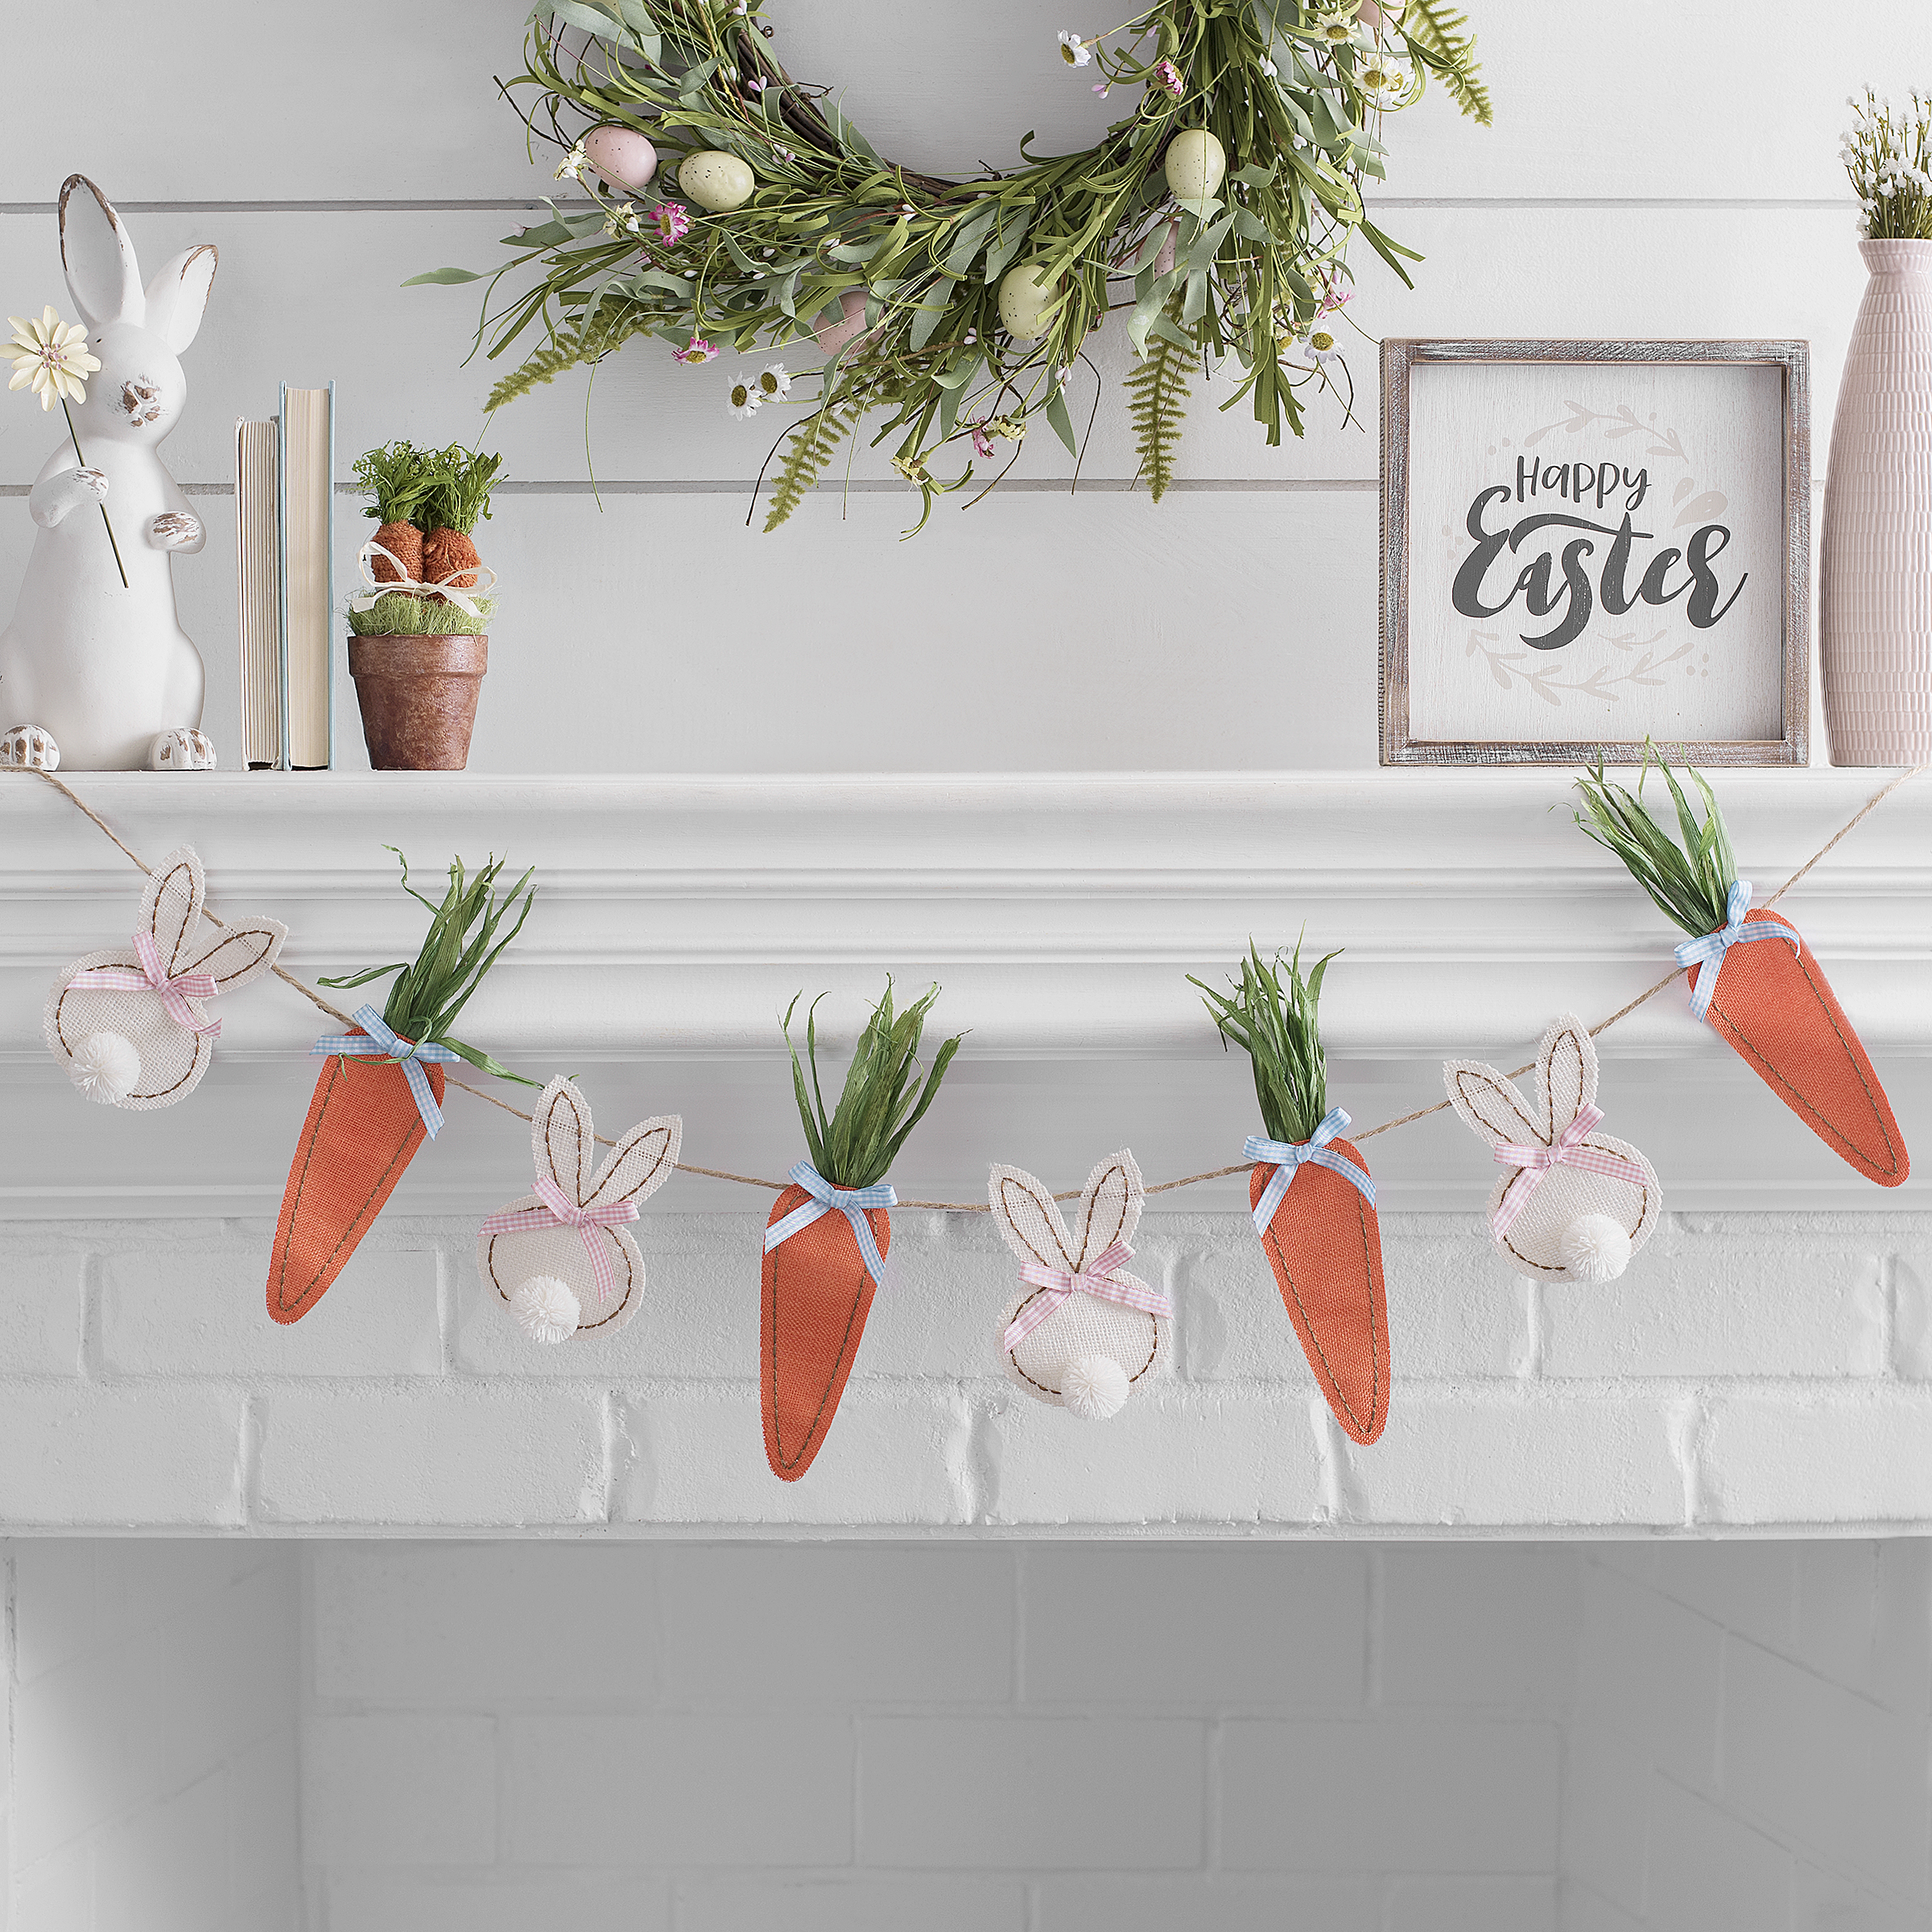 Kirkland's - Your Step-By-Step Guide To Easter Decorating Part 2